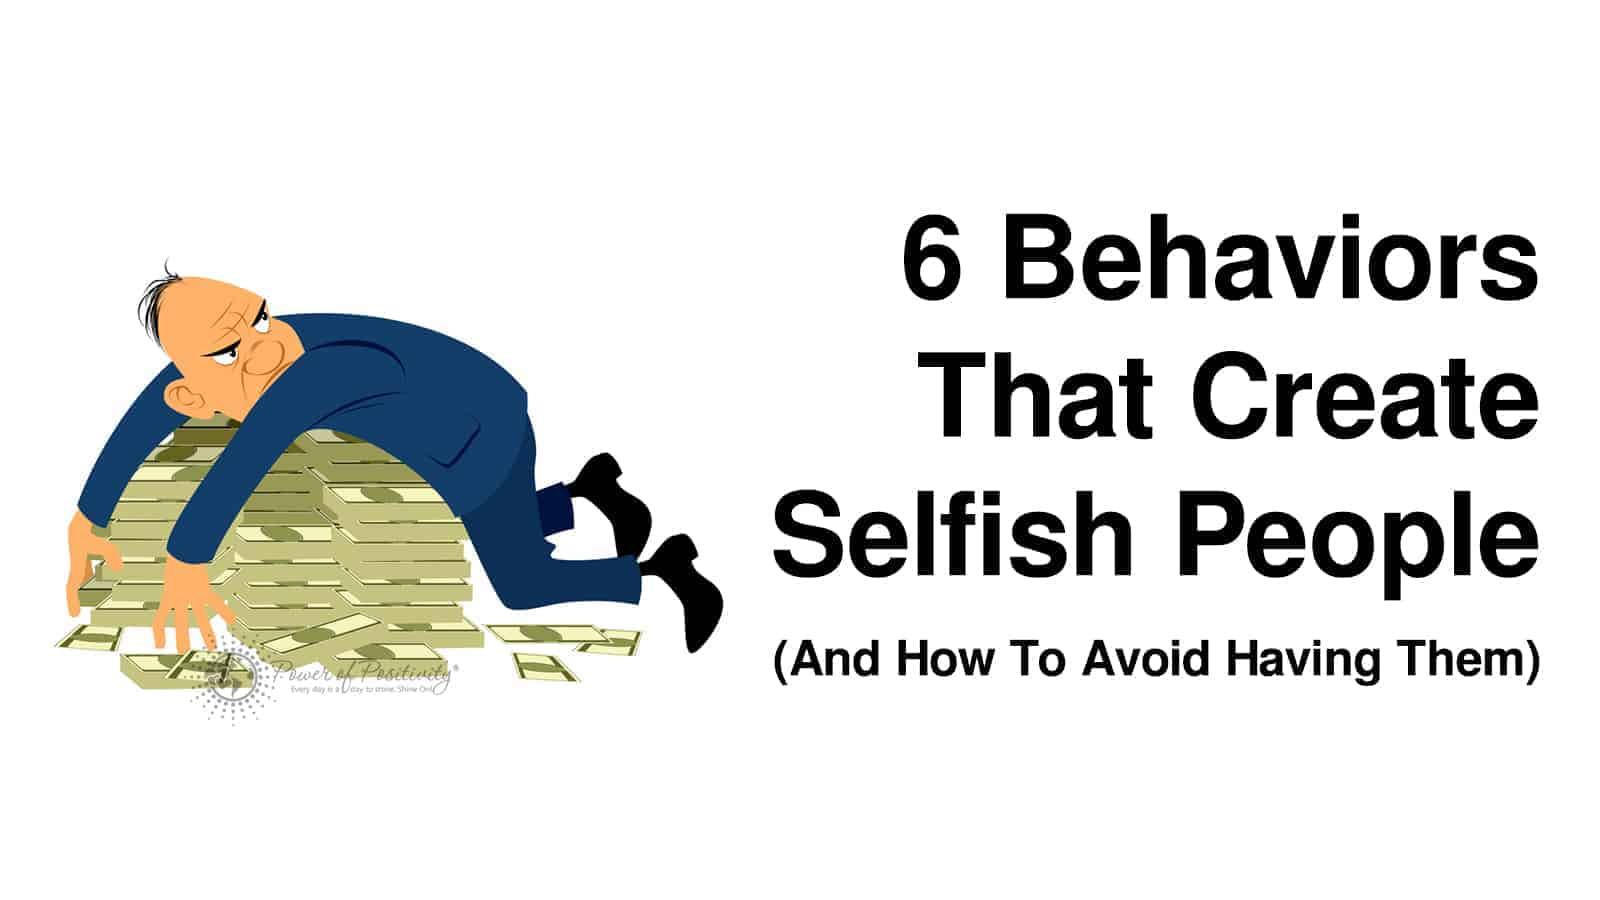 6 Behaviors That Create Selfish People And How To Avoid